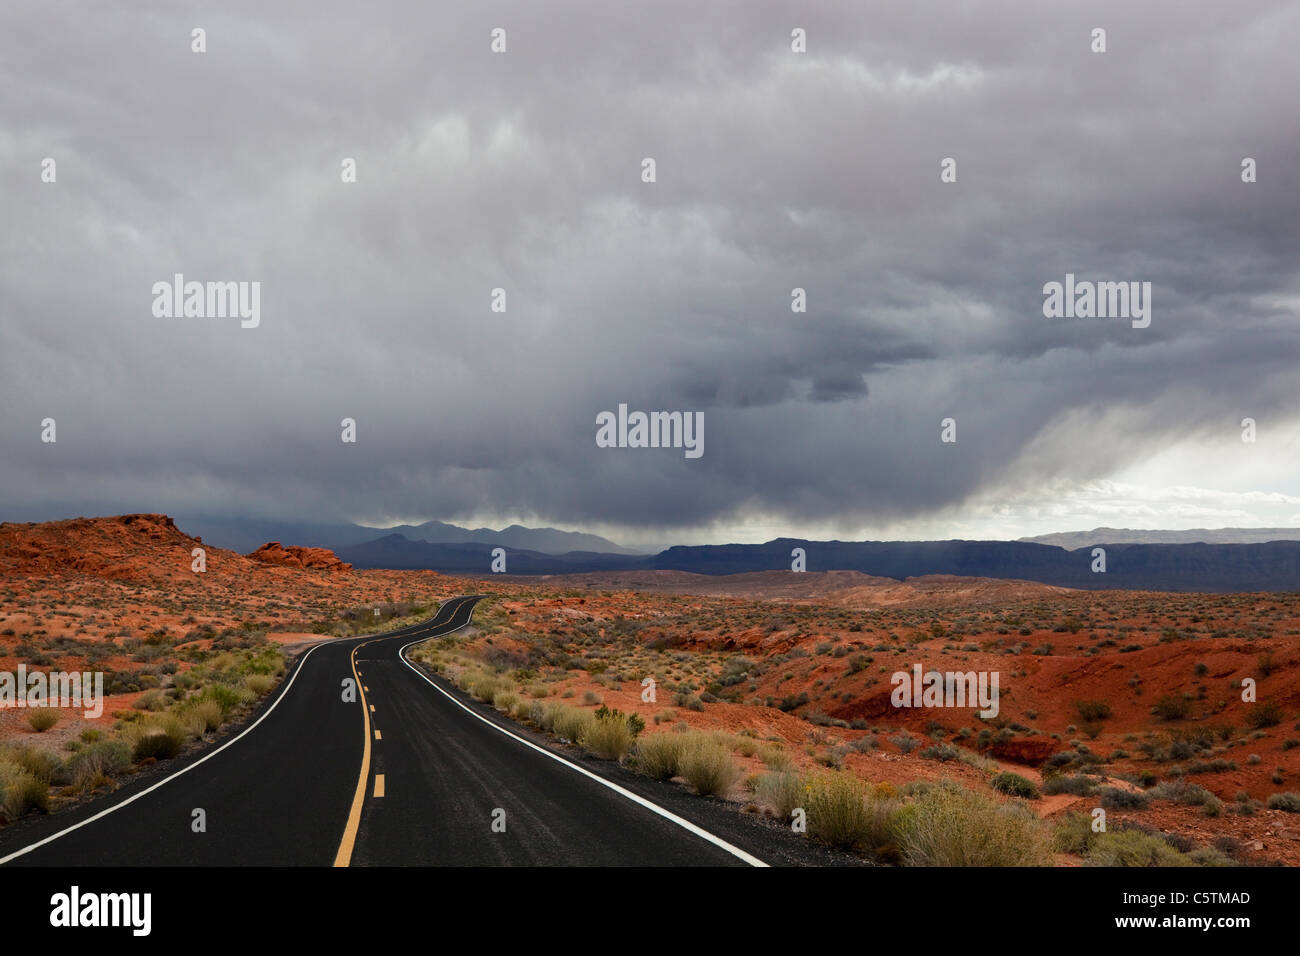 USA, Nevada, Valley of Fire State Park, Empty road - Stock Image